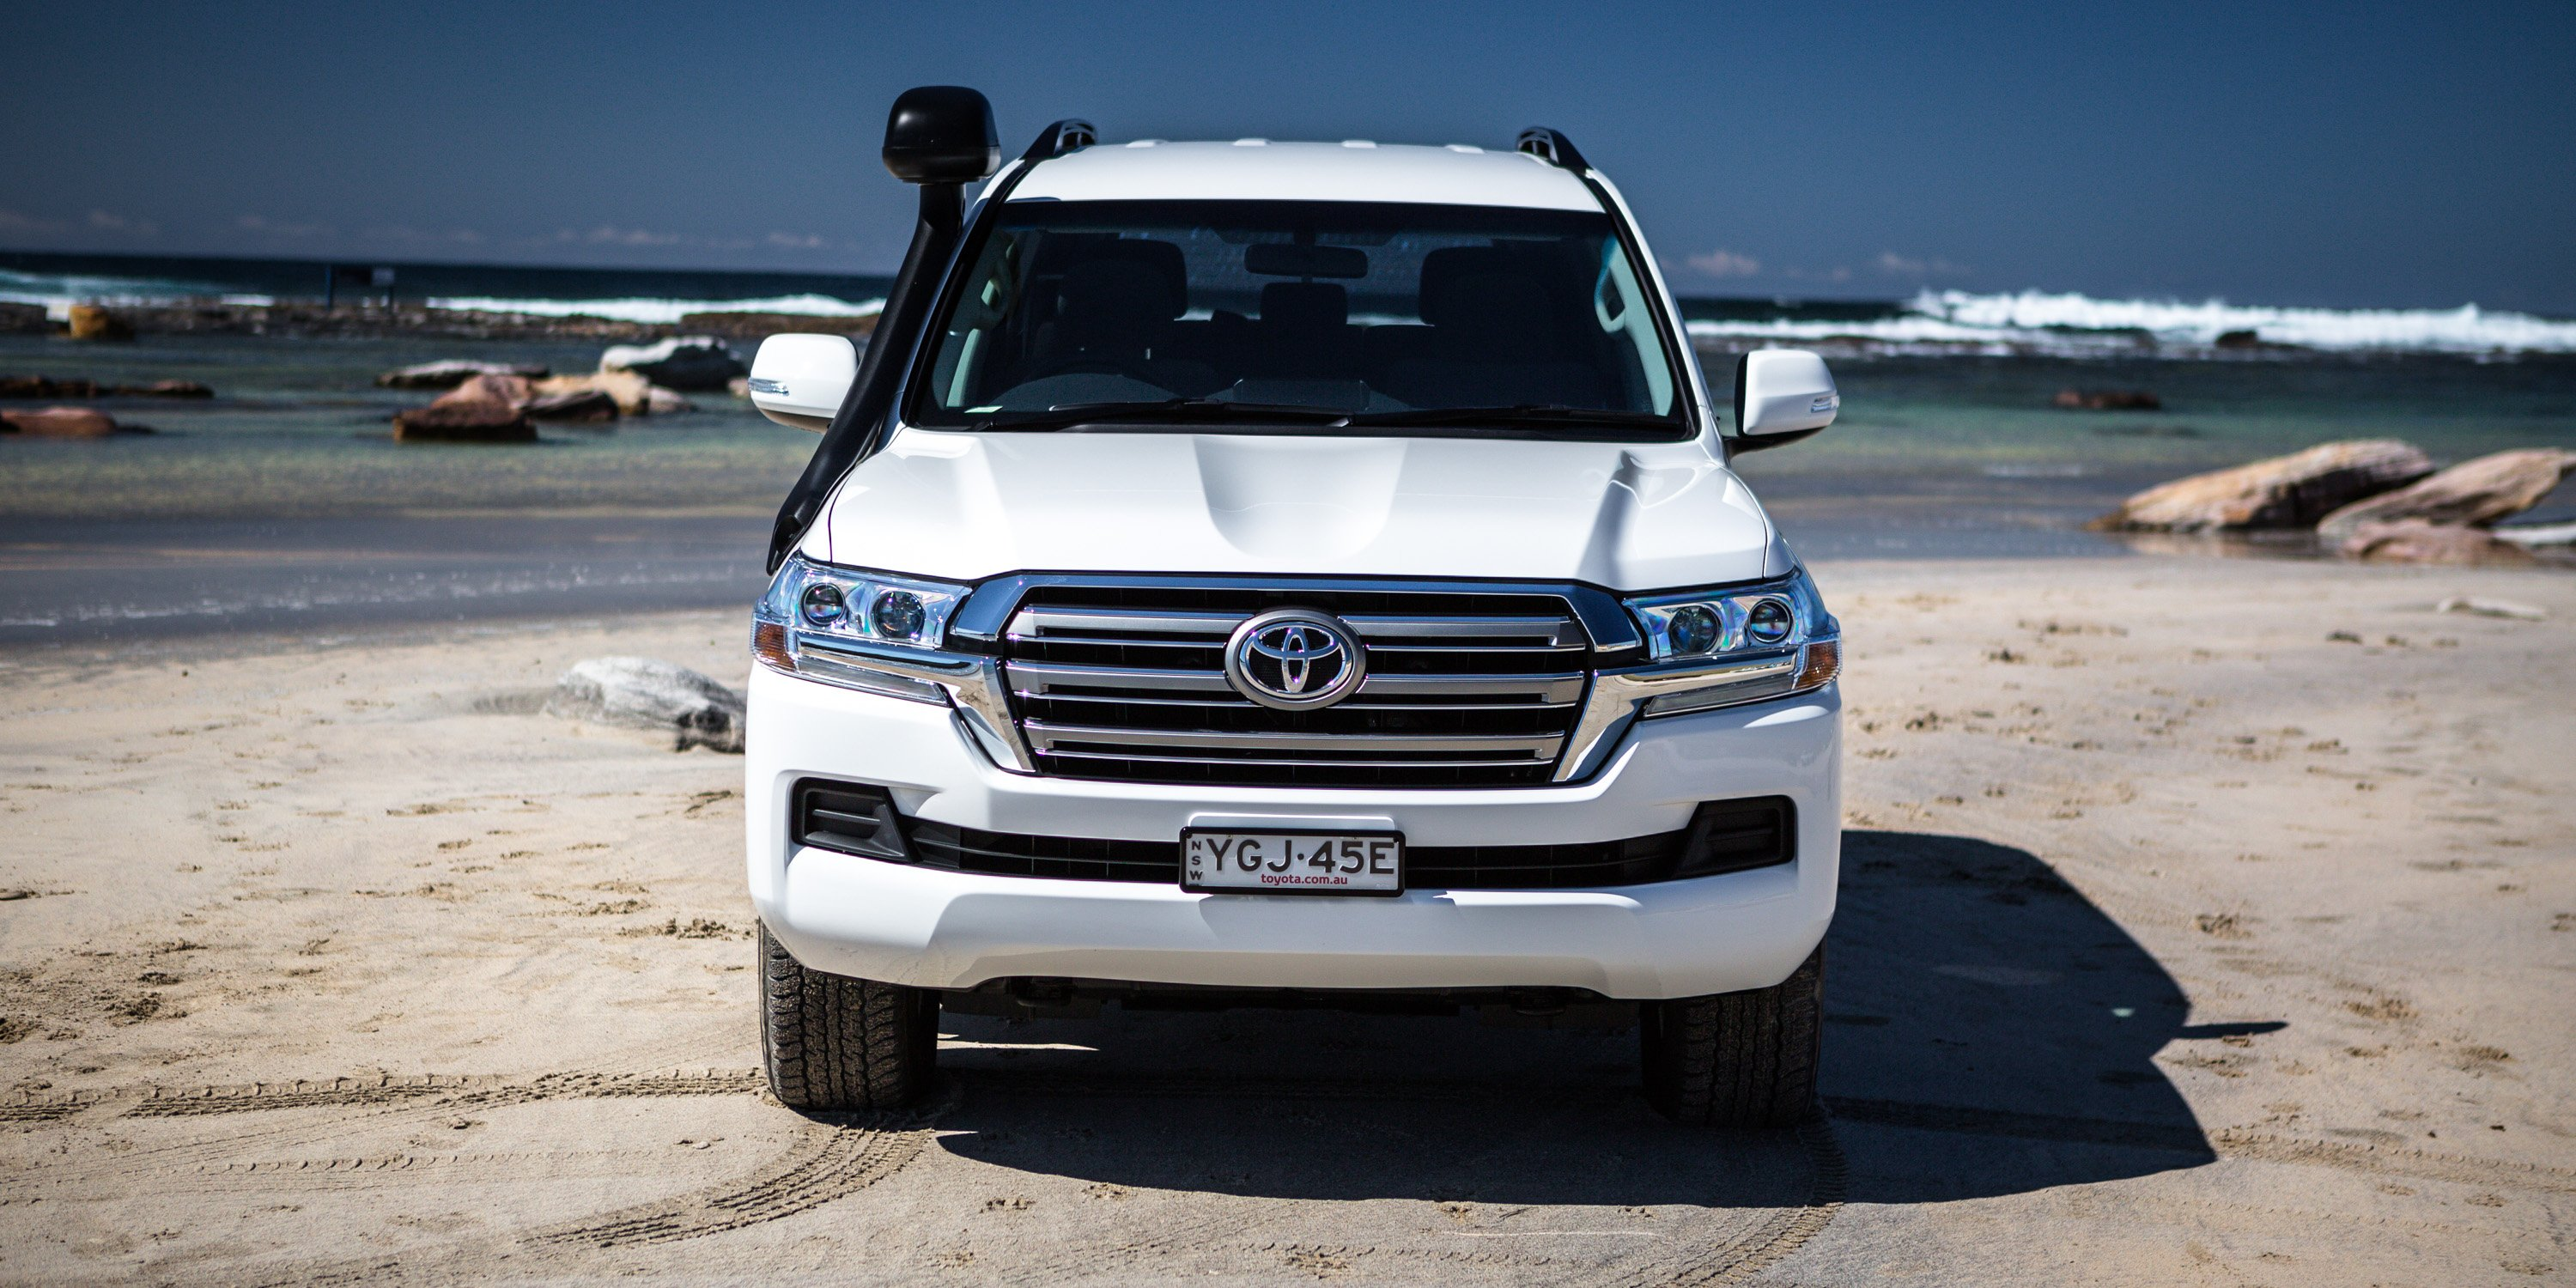 Excellent 2016 Toyota LandCruiser 200 GXL Diesel Review  CarAdvice